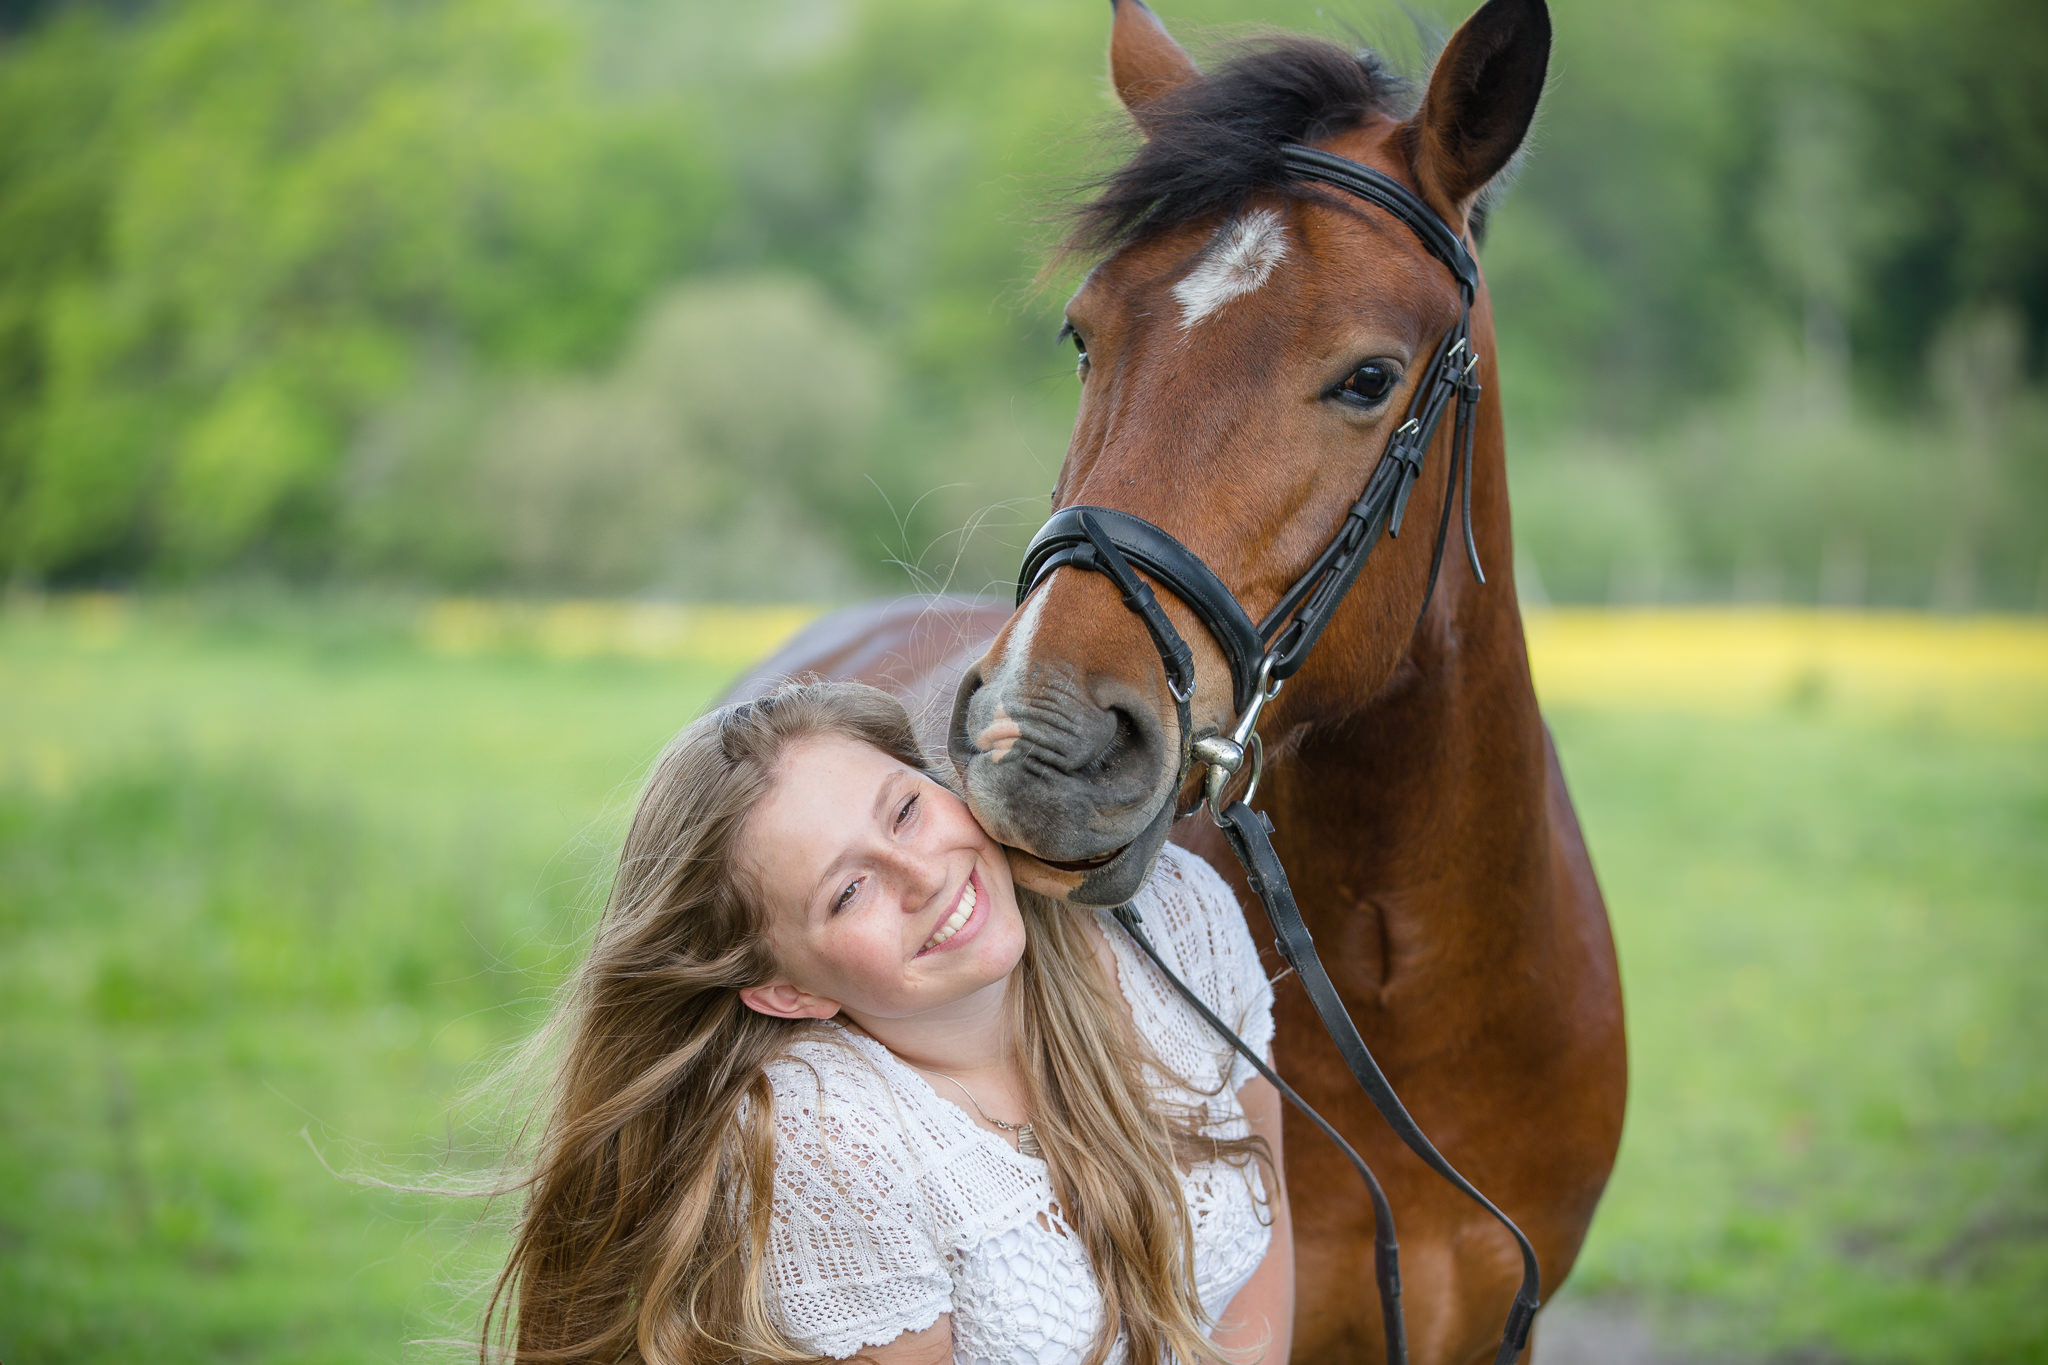 Friendly-Pony-Tender-Equine-Photography-Moment